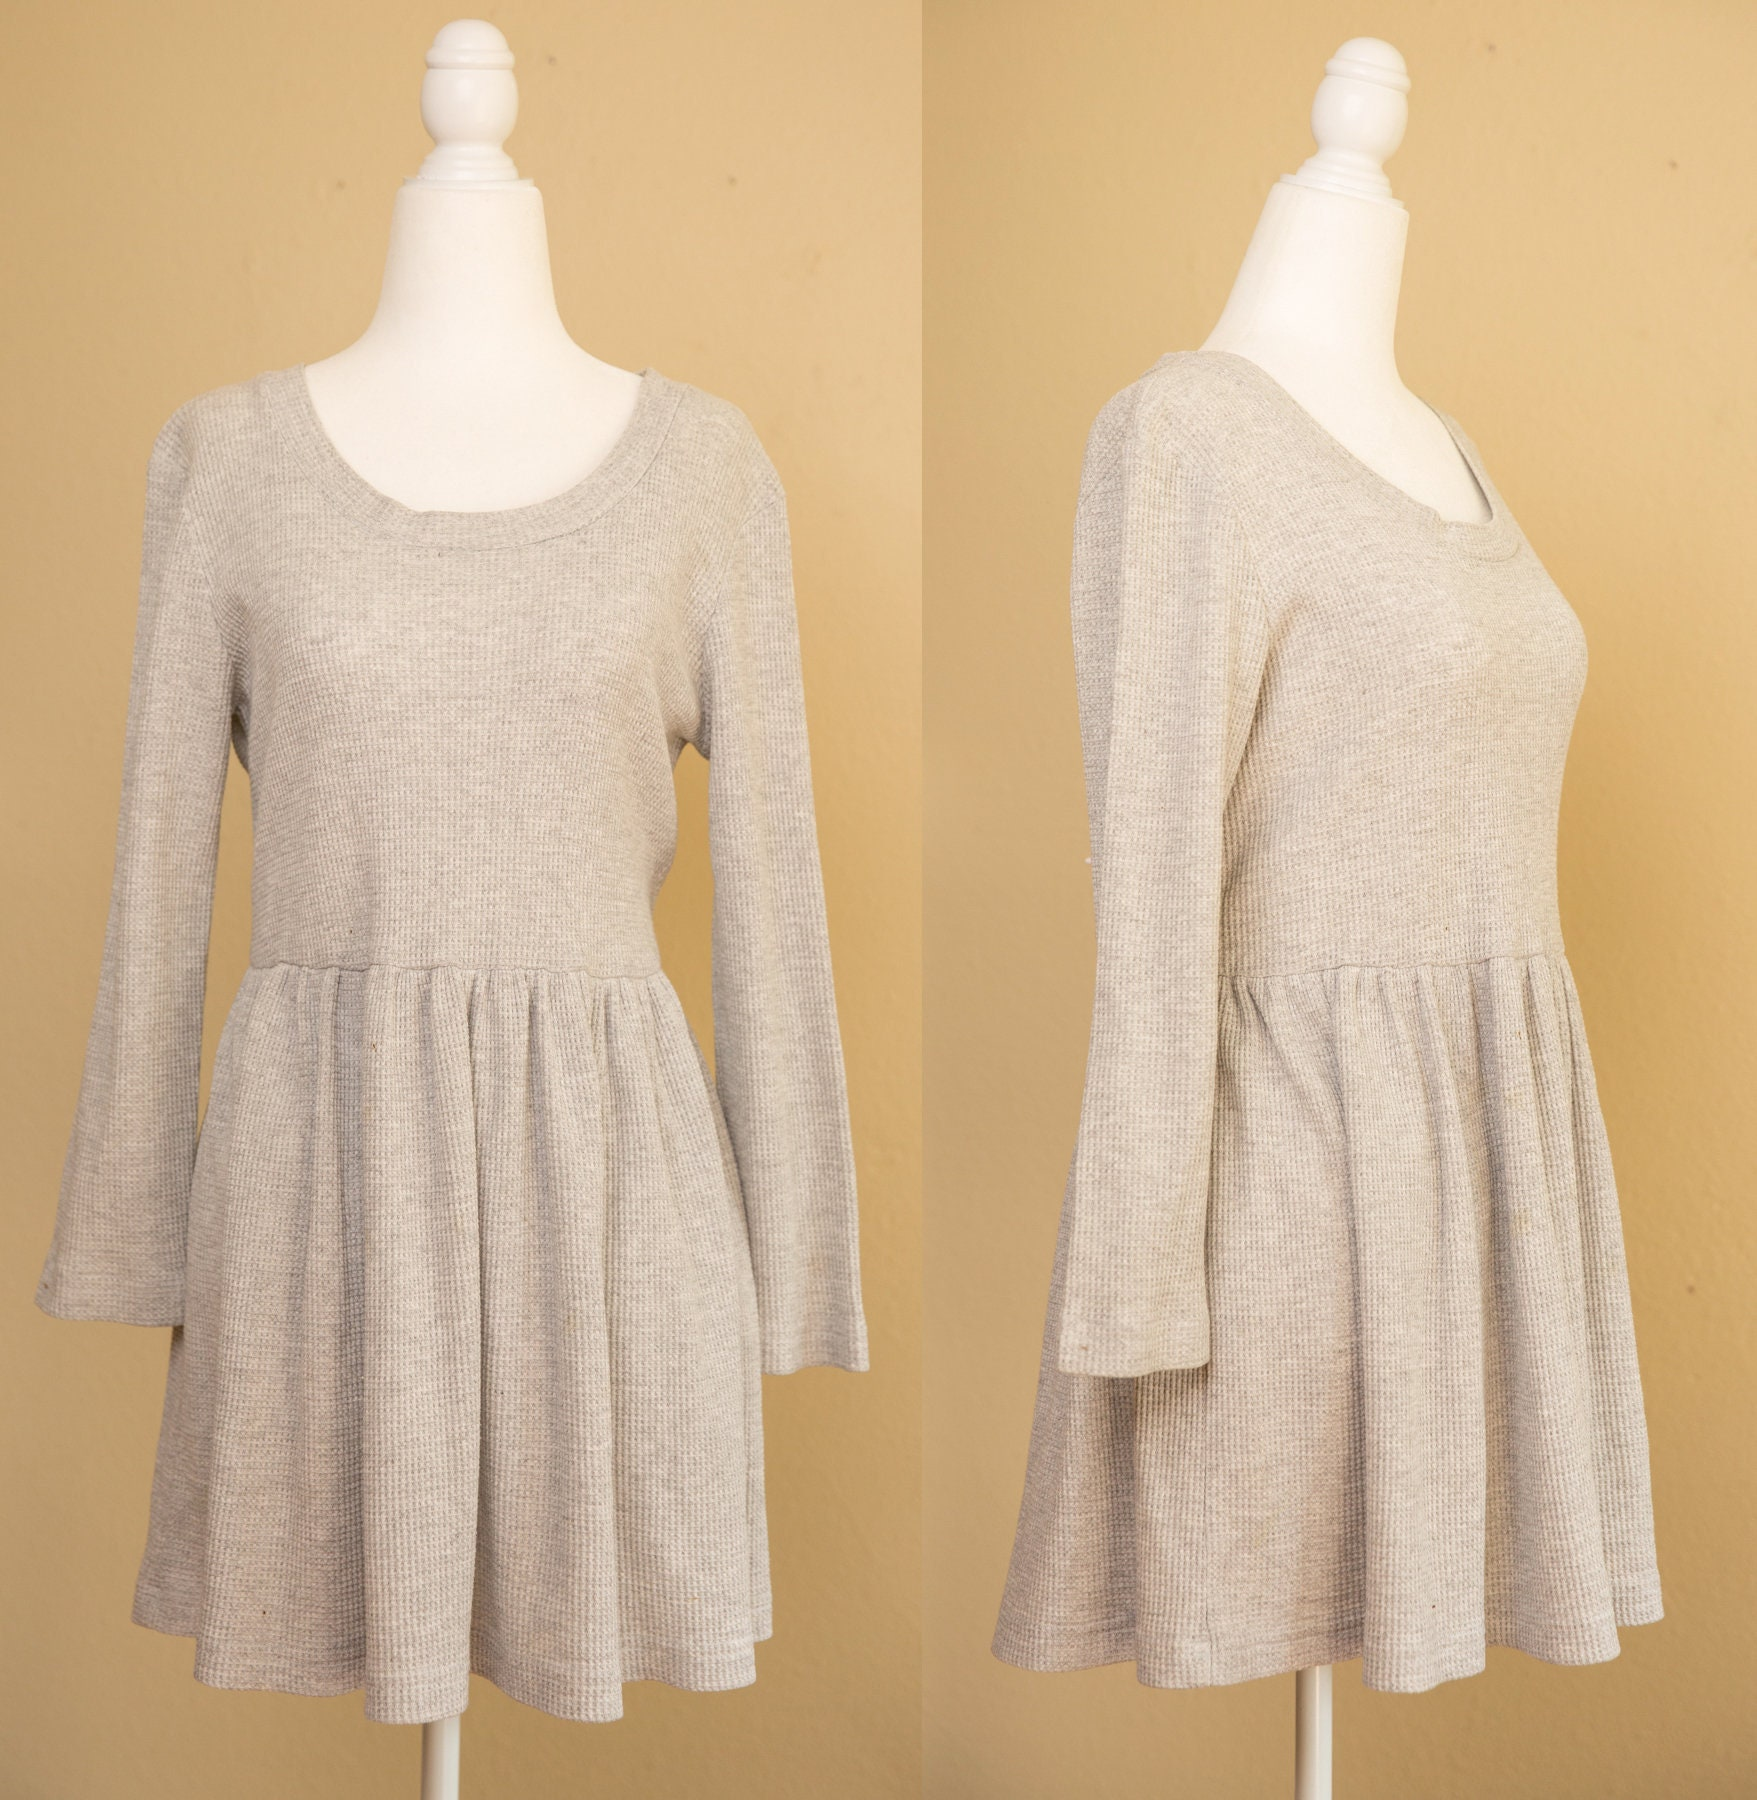 80s Dresses | Casual to Party Dresses Vintage 1980s 1990s Cw Dress Mini Gray Waffle Knit Long Sleeve Casual Medium $34.00 AT vintagedancer.com